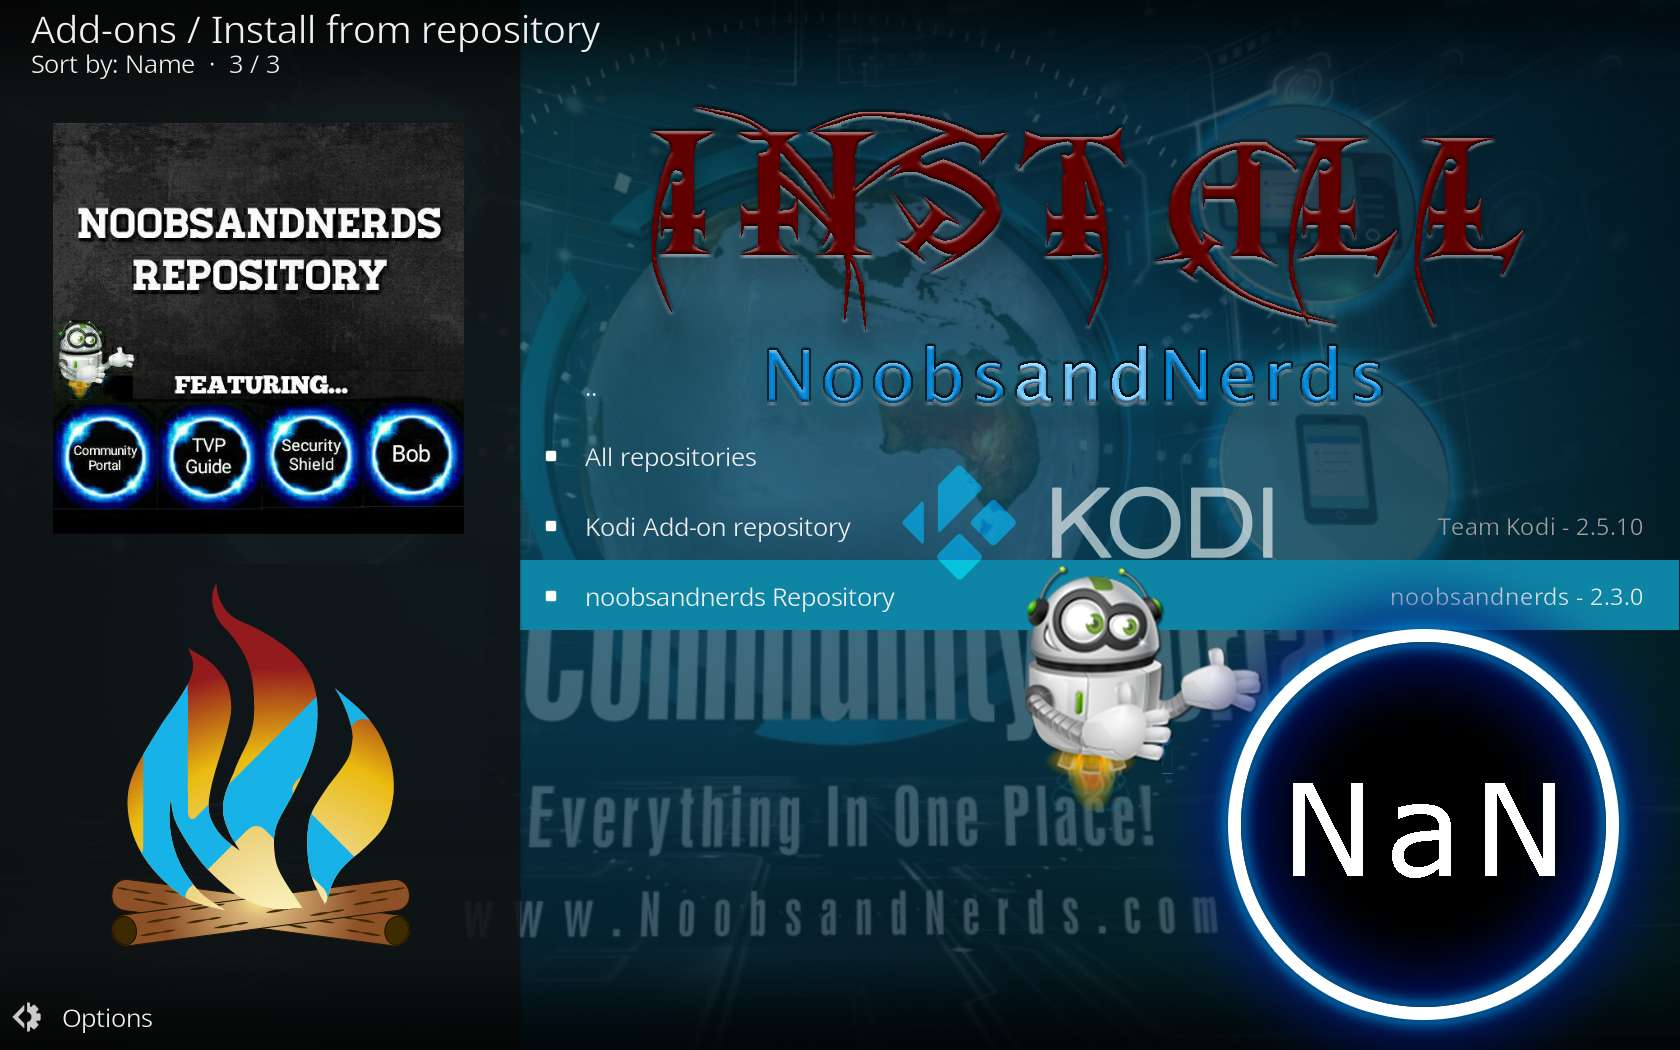 Kodi NoobsandNerds Repo Install Tutorial Guide